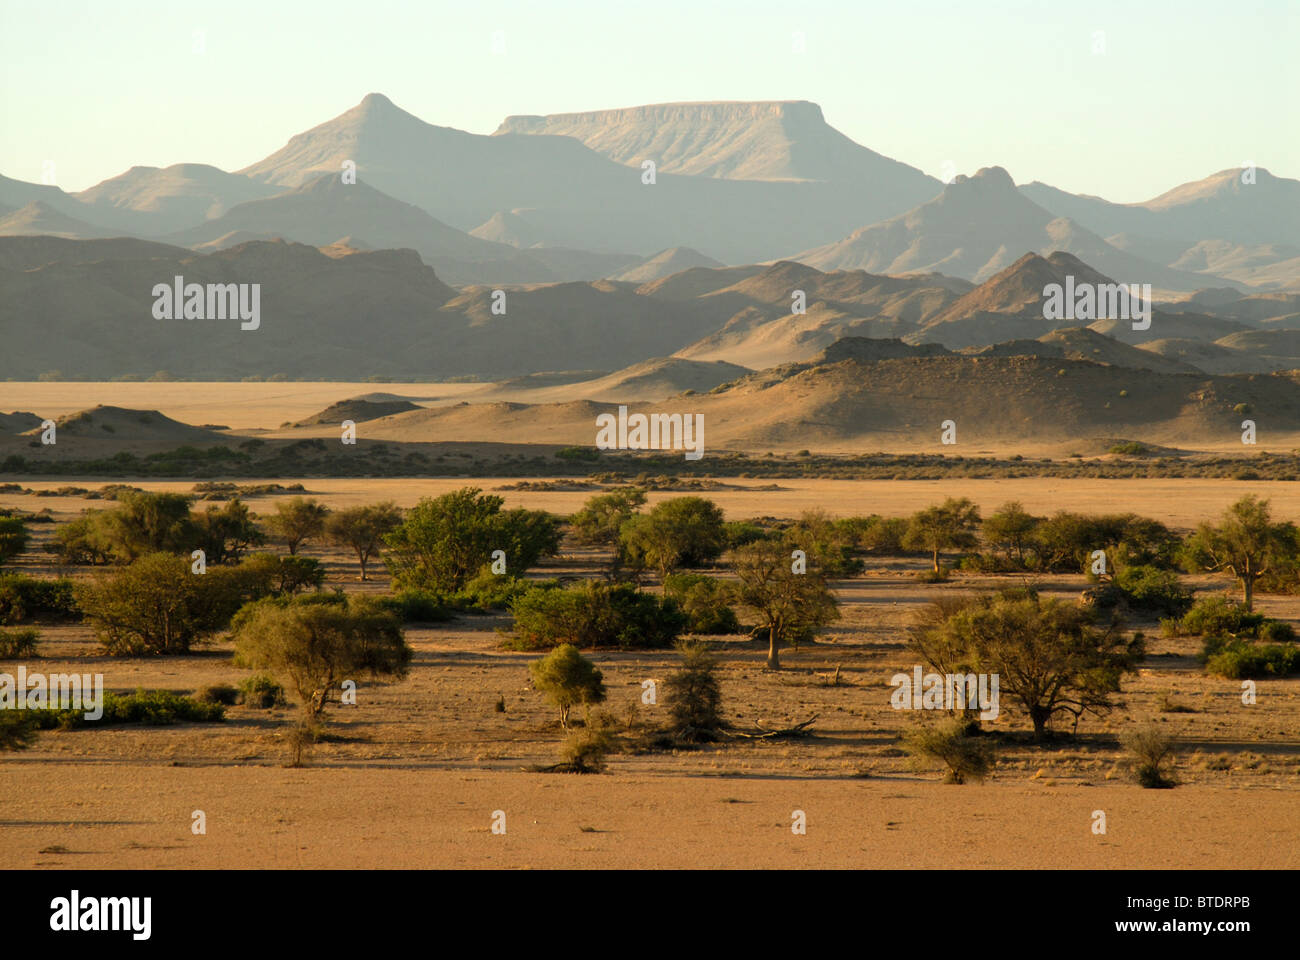 Scenic view of Ana trees (Feidherbia albida) in Huab River Valley and mountains in the background - Stock Image